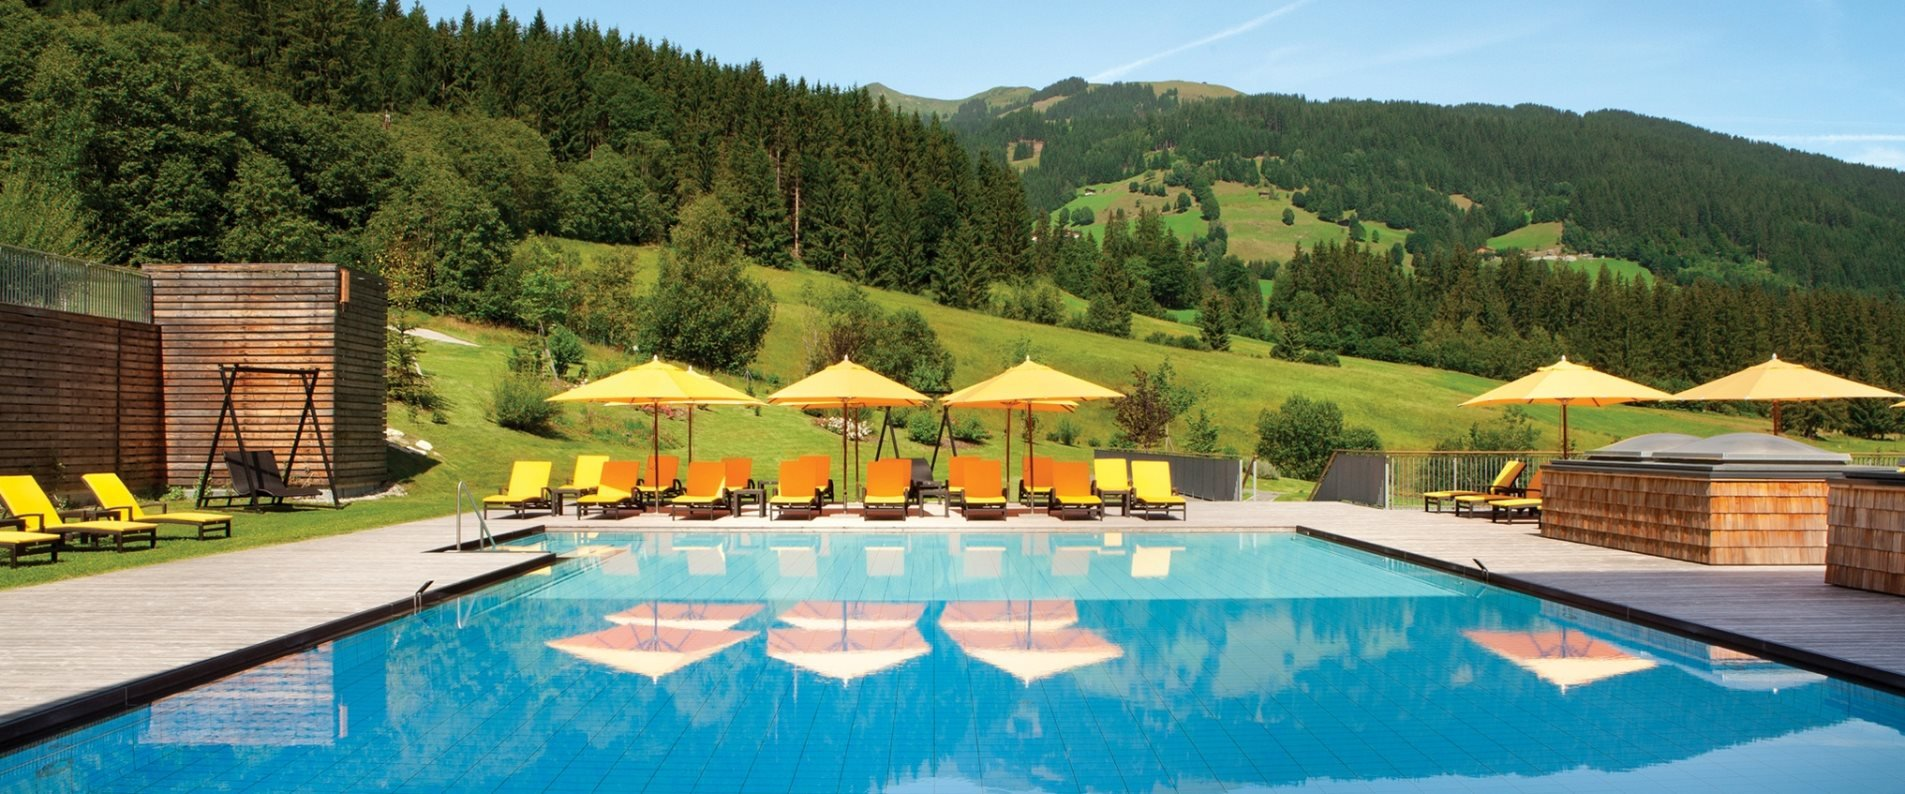 webseite_jpeg_kempinski-das-tirol_spa_outdoor-pool